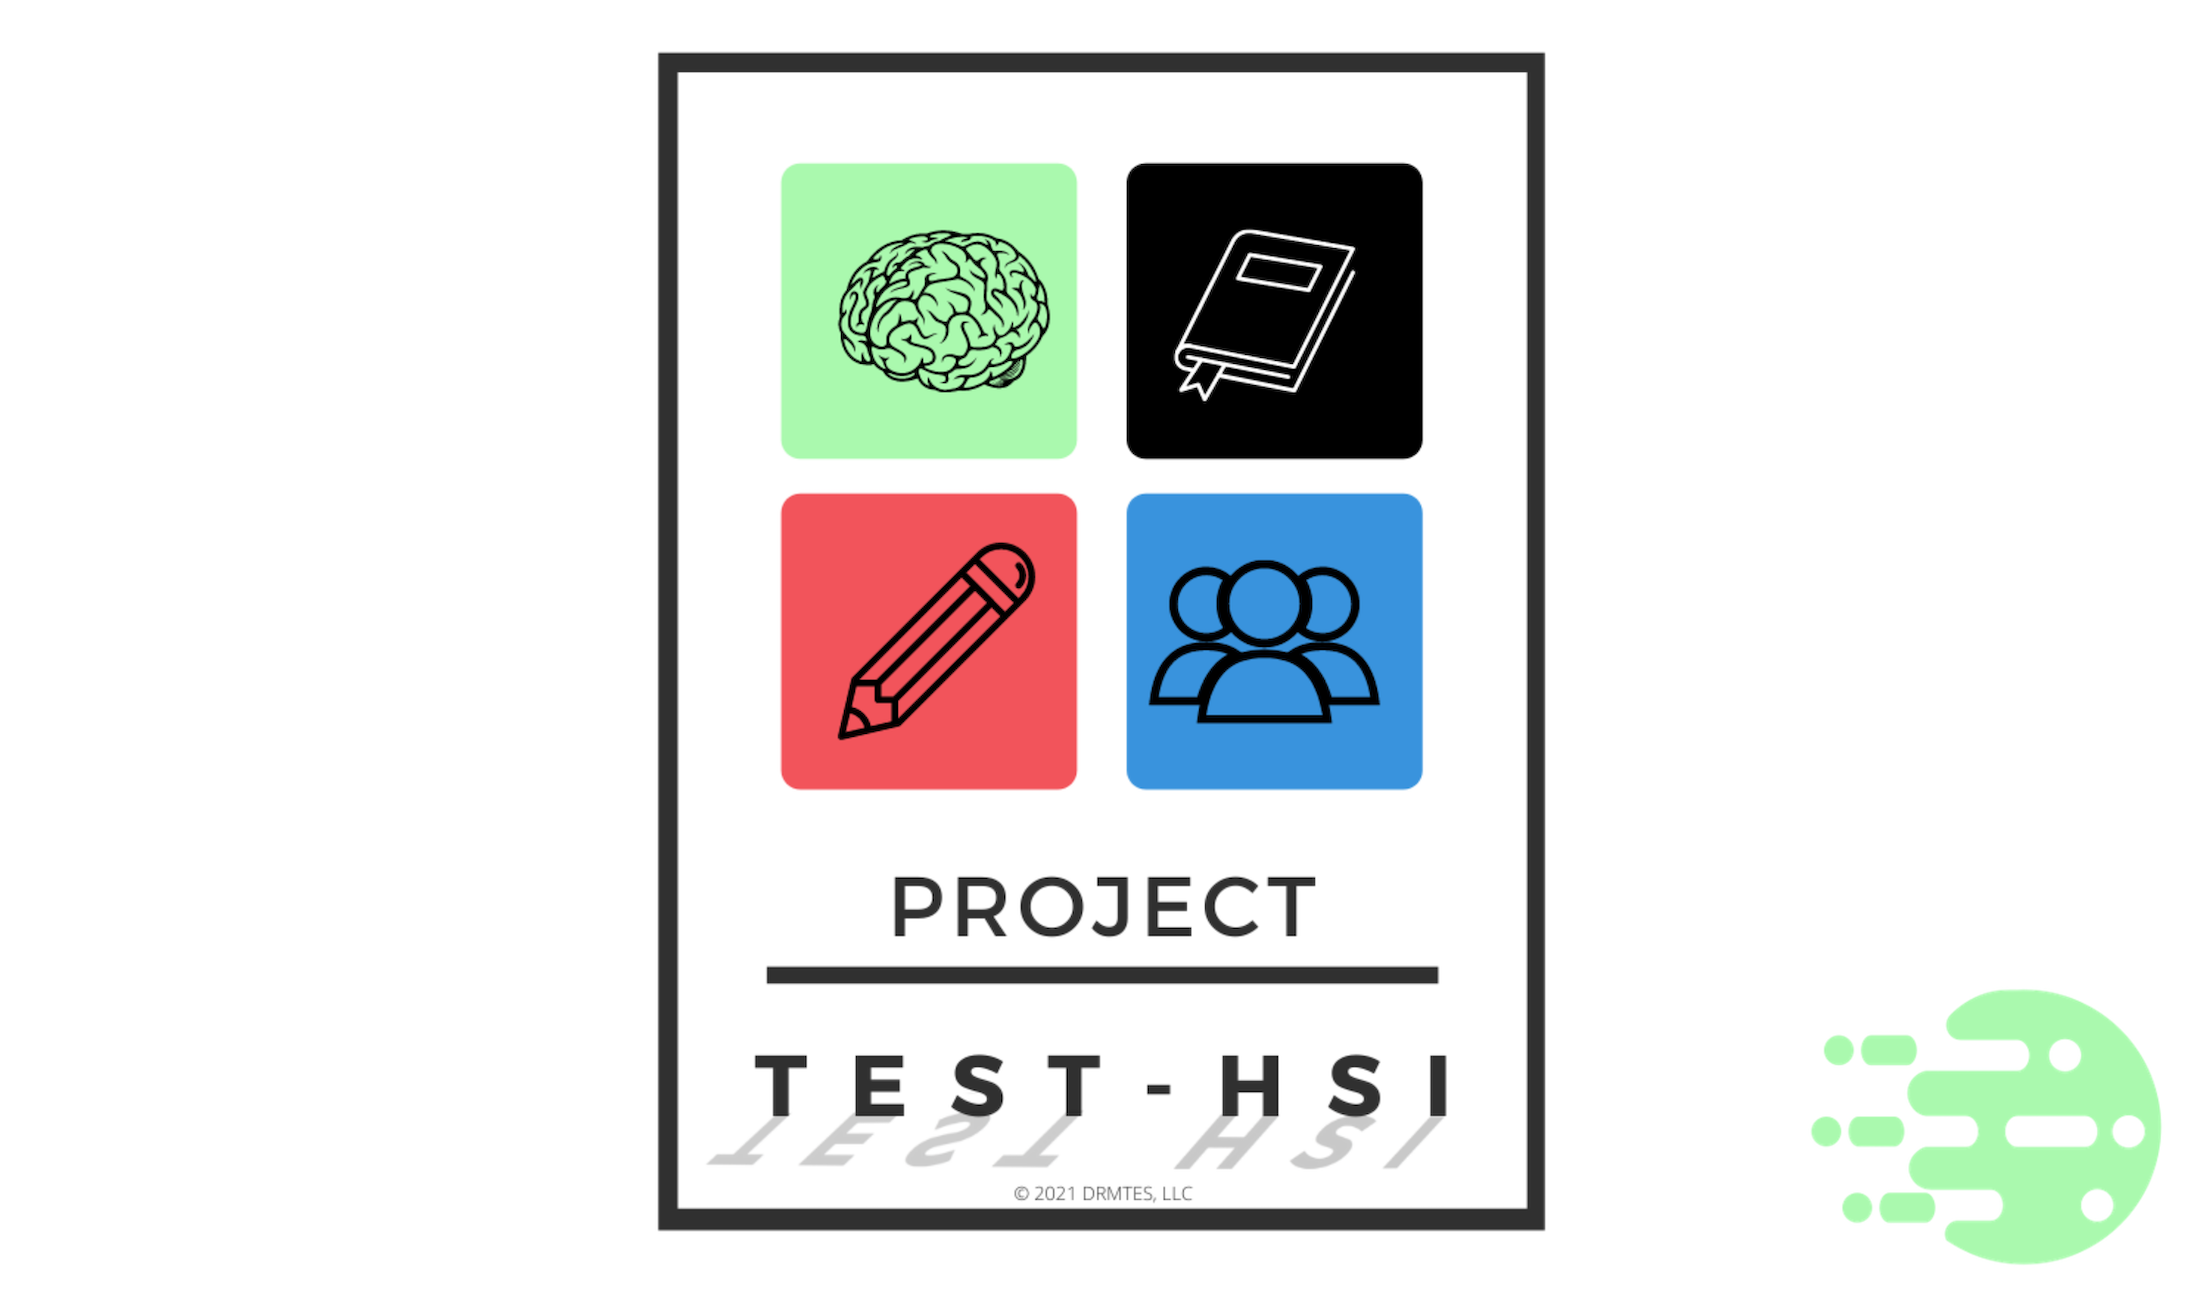 Project TEST-HSI